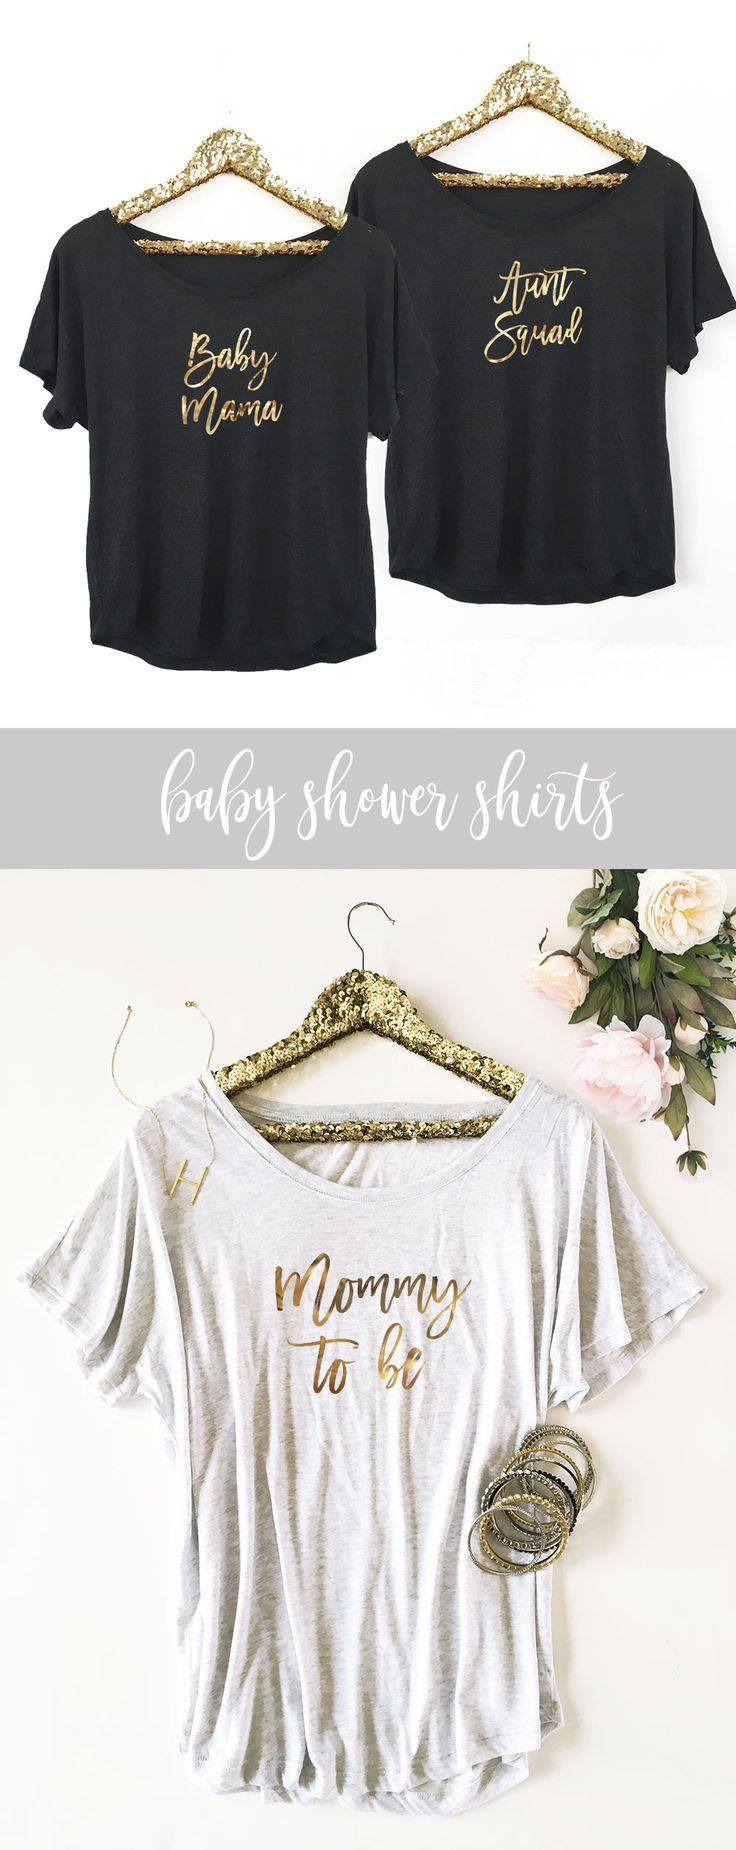 Baby Shower Shirt Ideas For Aunts : shower, shirt, ideas, aunts, Custom, Shirt, Godmother, Shirts,, Shirt,